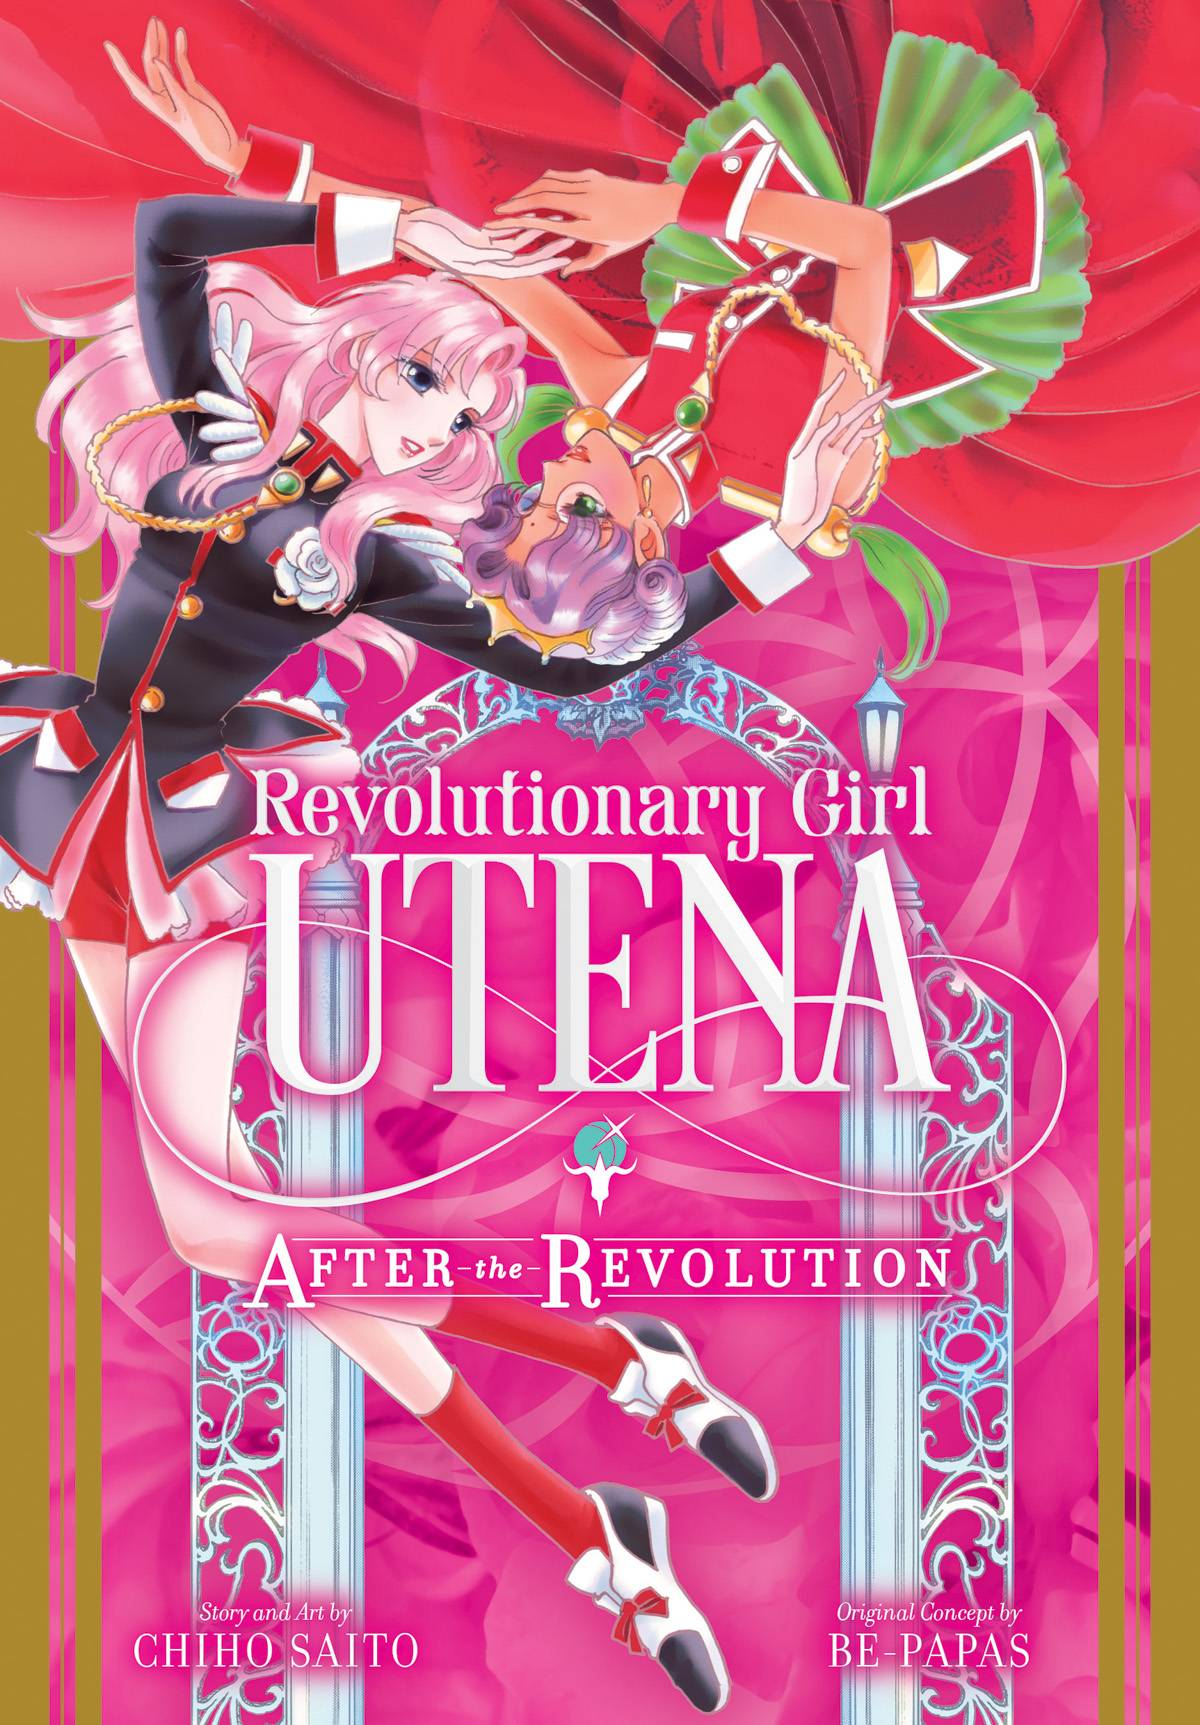 REVOLUTIONARY GIRL UTENA AFTER THE REVOLUTION GN